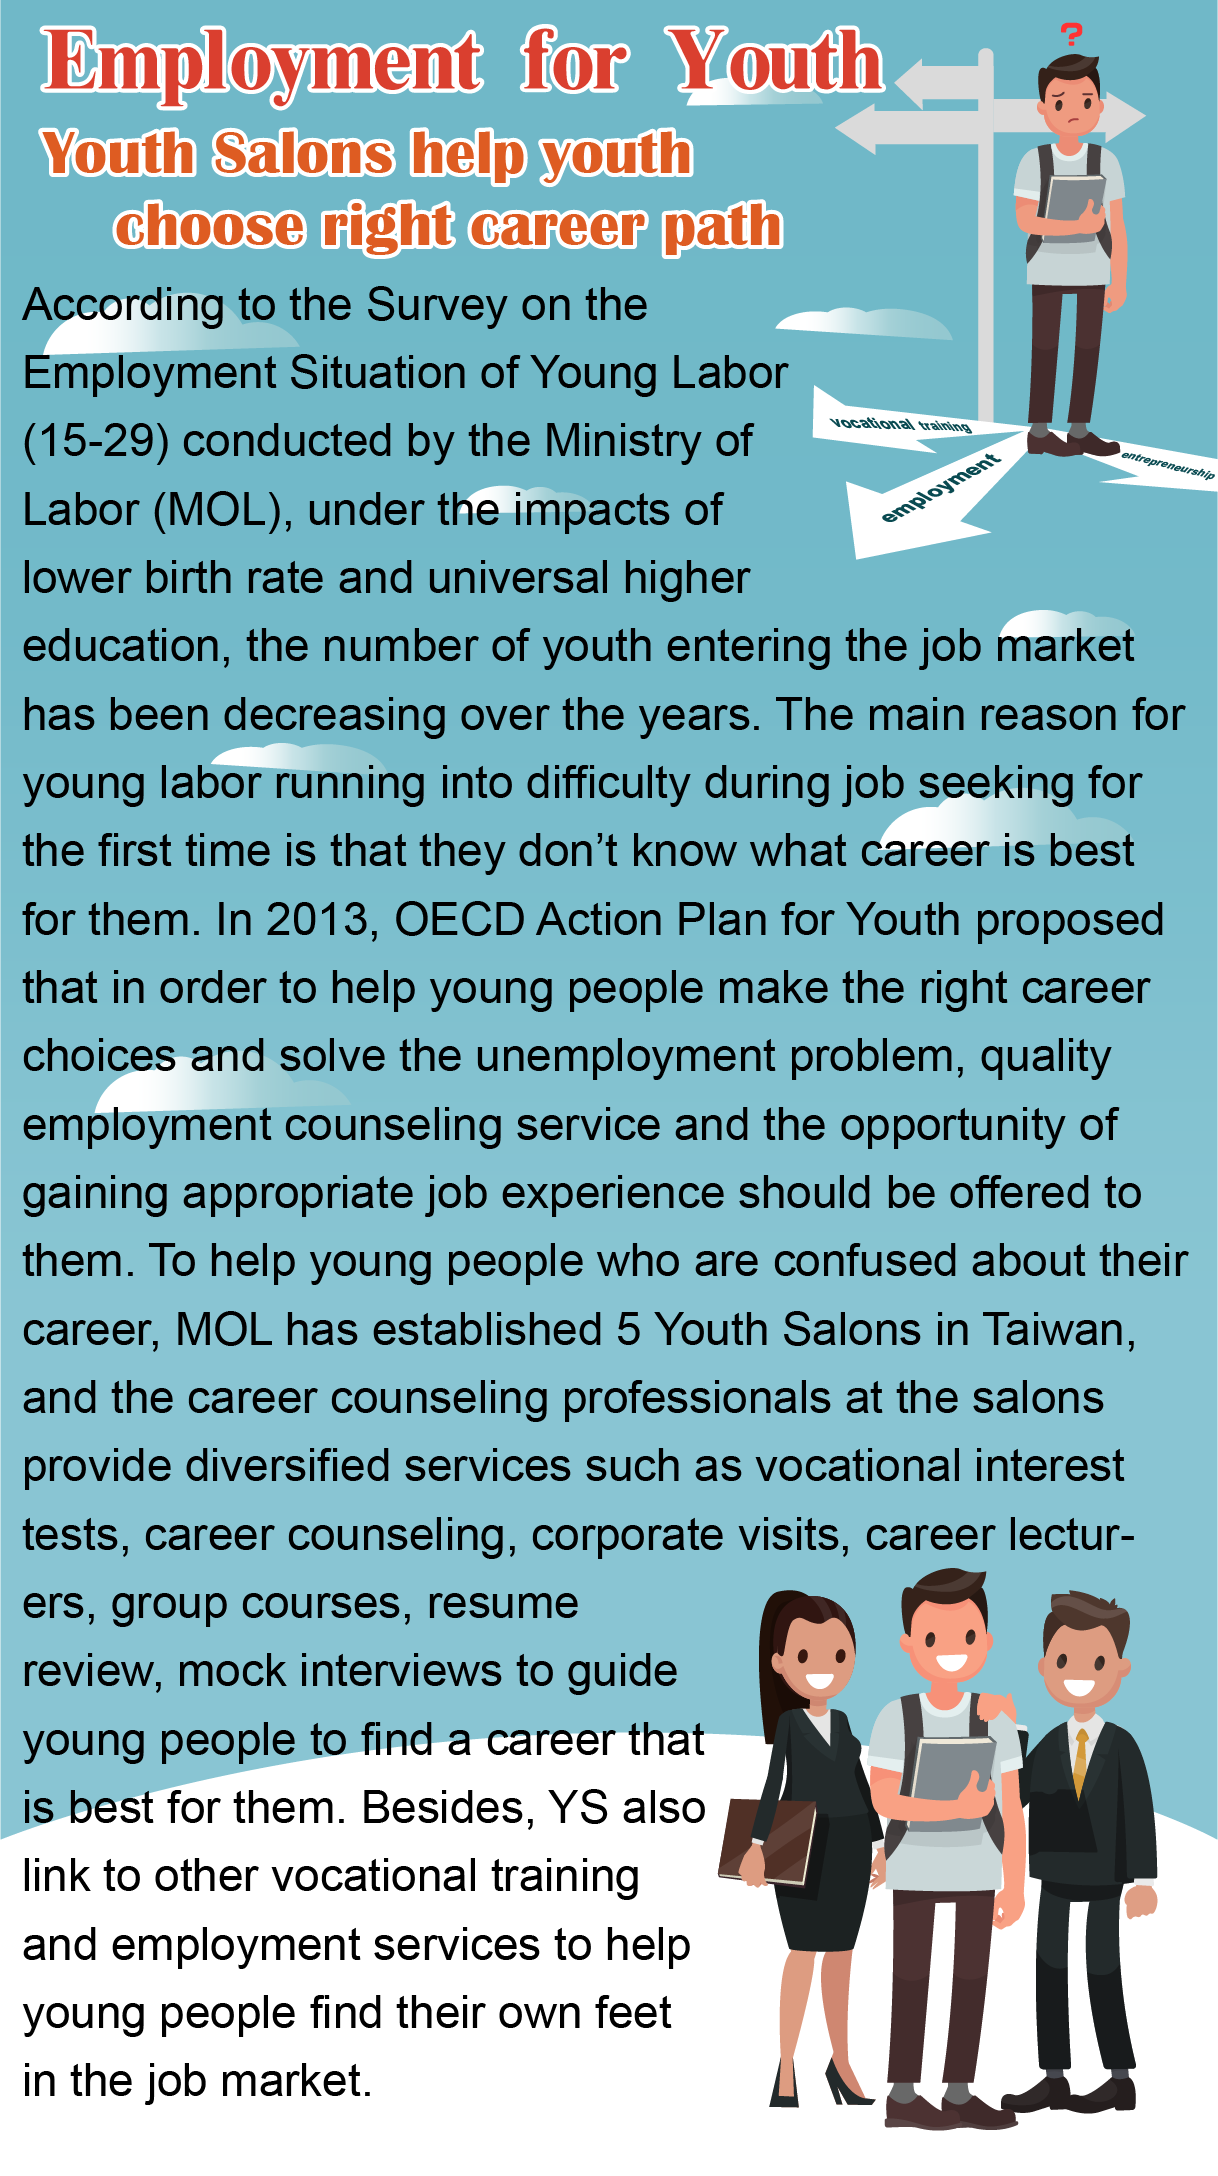 Youth Salons help youth choose right career path